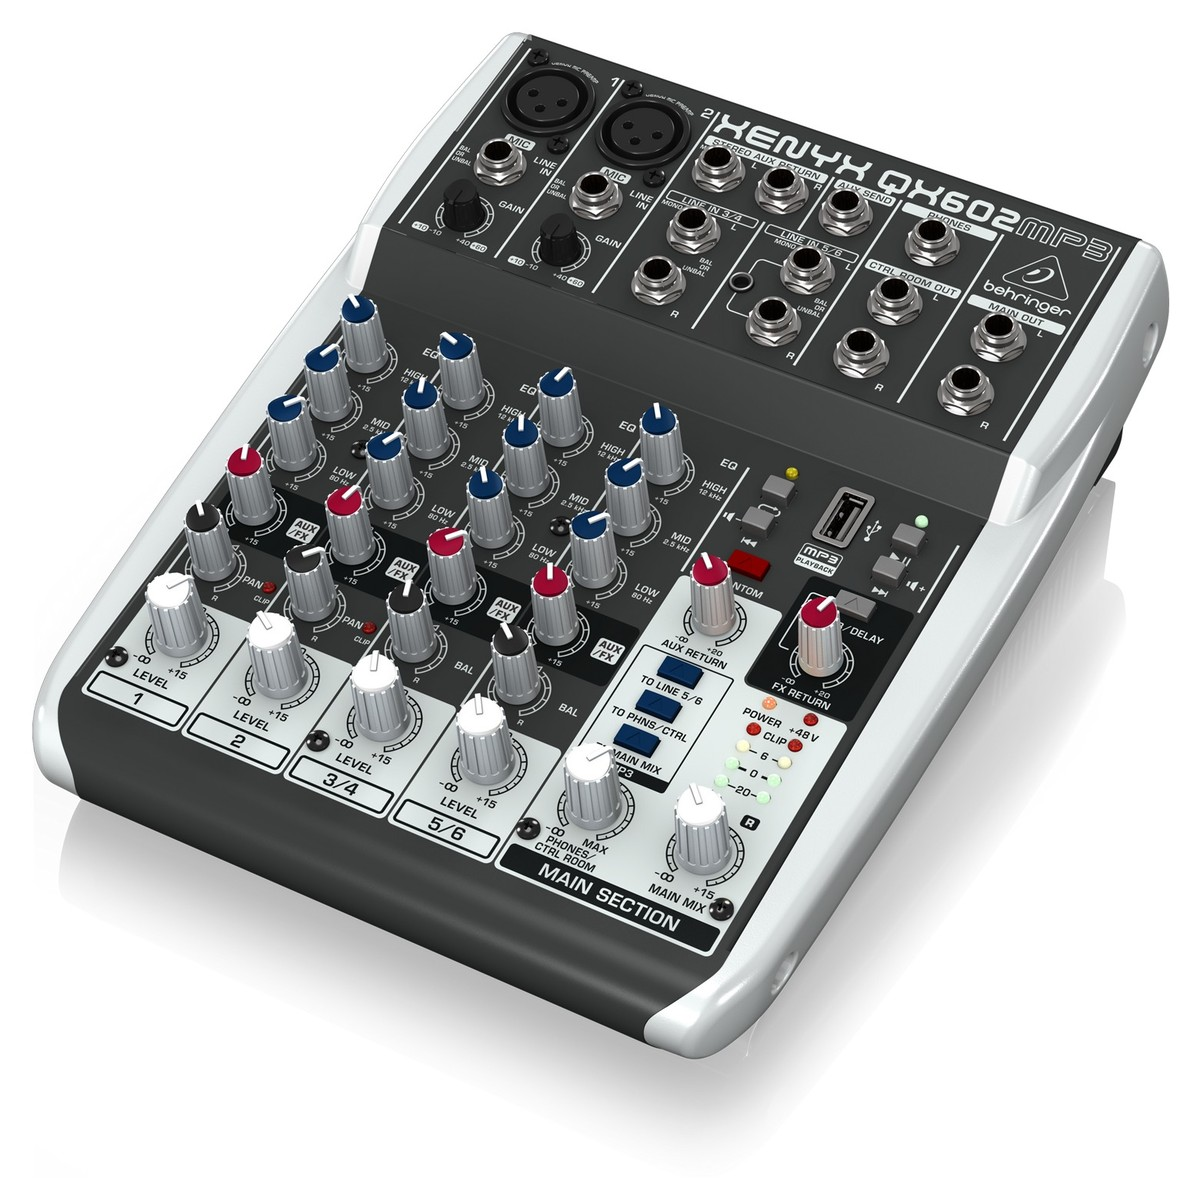 Behringer Xenyx Qx602mp3 6 Input Mixer With Mp3 Player At Gear4music Cb Radio Wiring